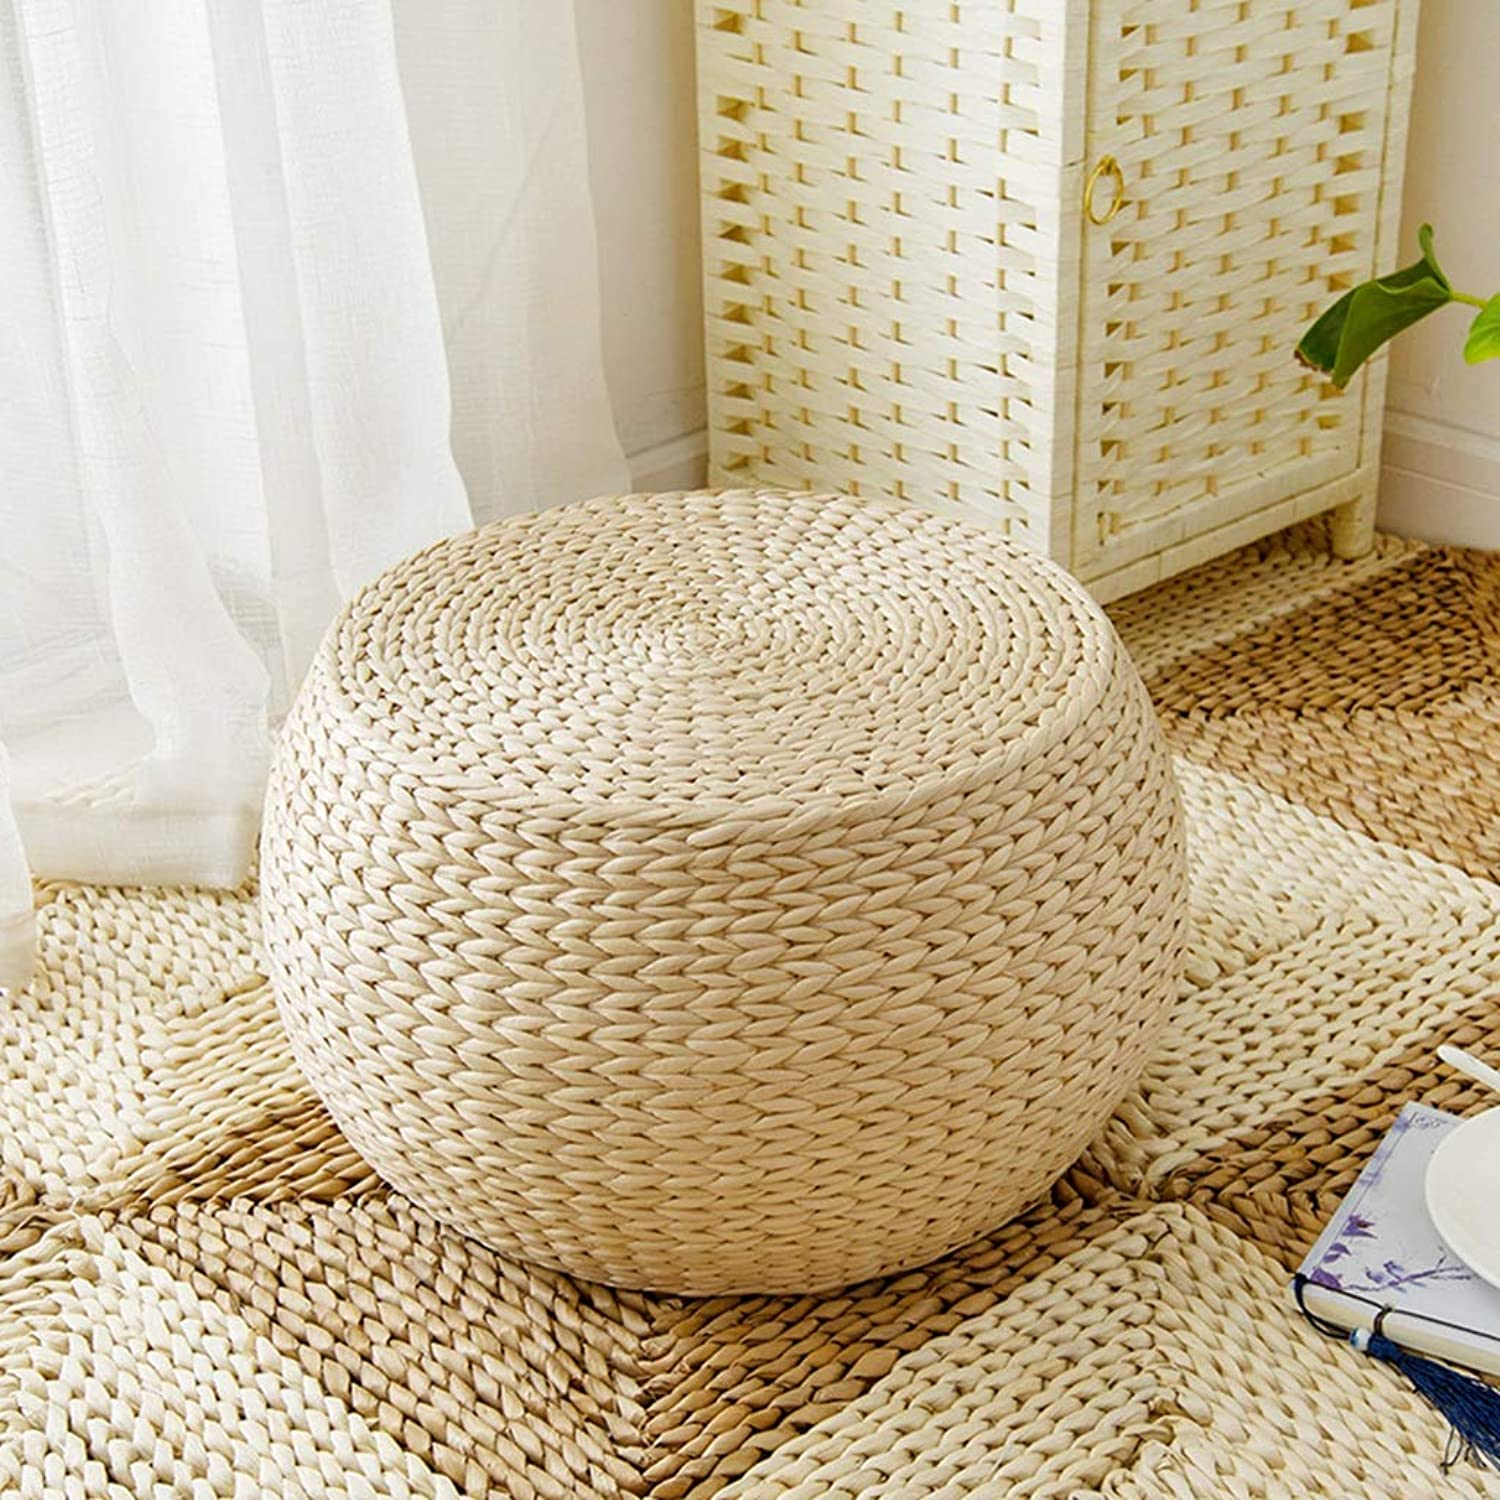 RXY-Wicker chair Japanese Round Rattan Stool Comfortable and Environmentally Friendly Home Living Room Change shoes Stool Tatami Cushion (Size   40cm)